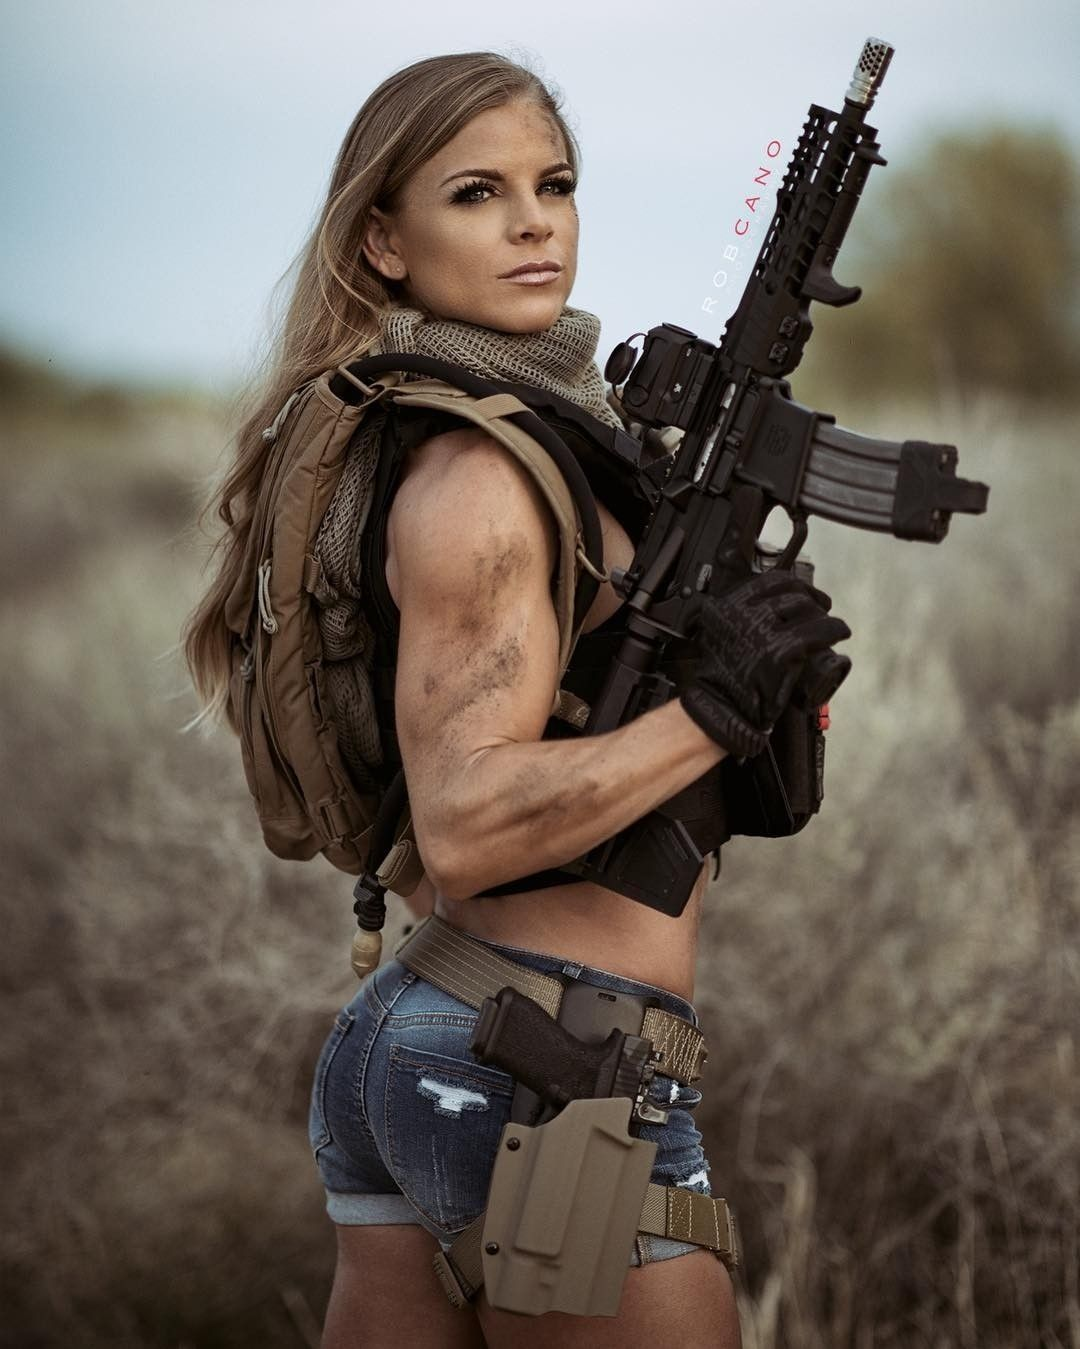 40 Fine Ladies Supporting The Second Amendment